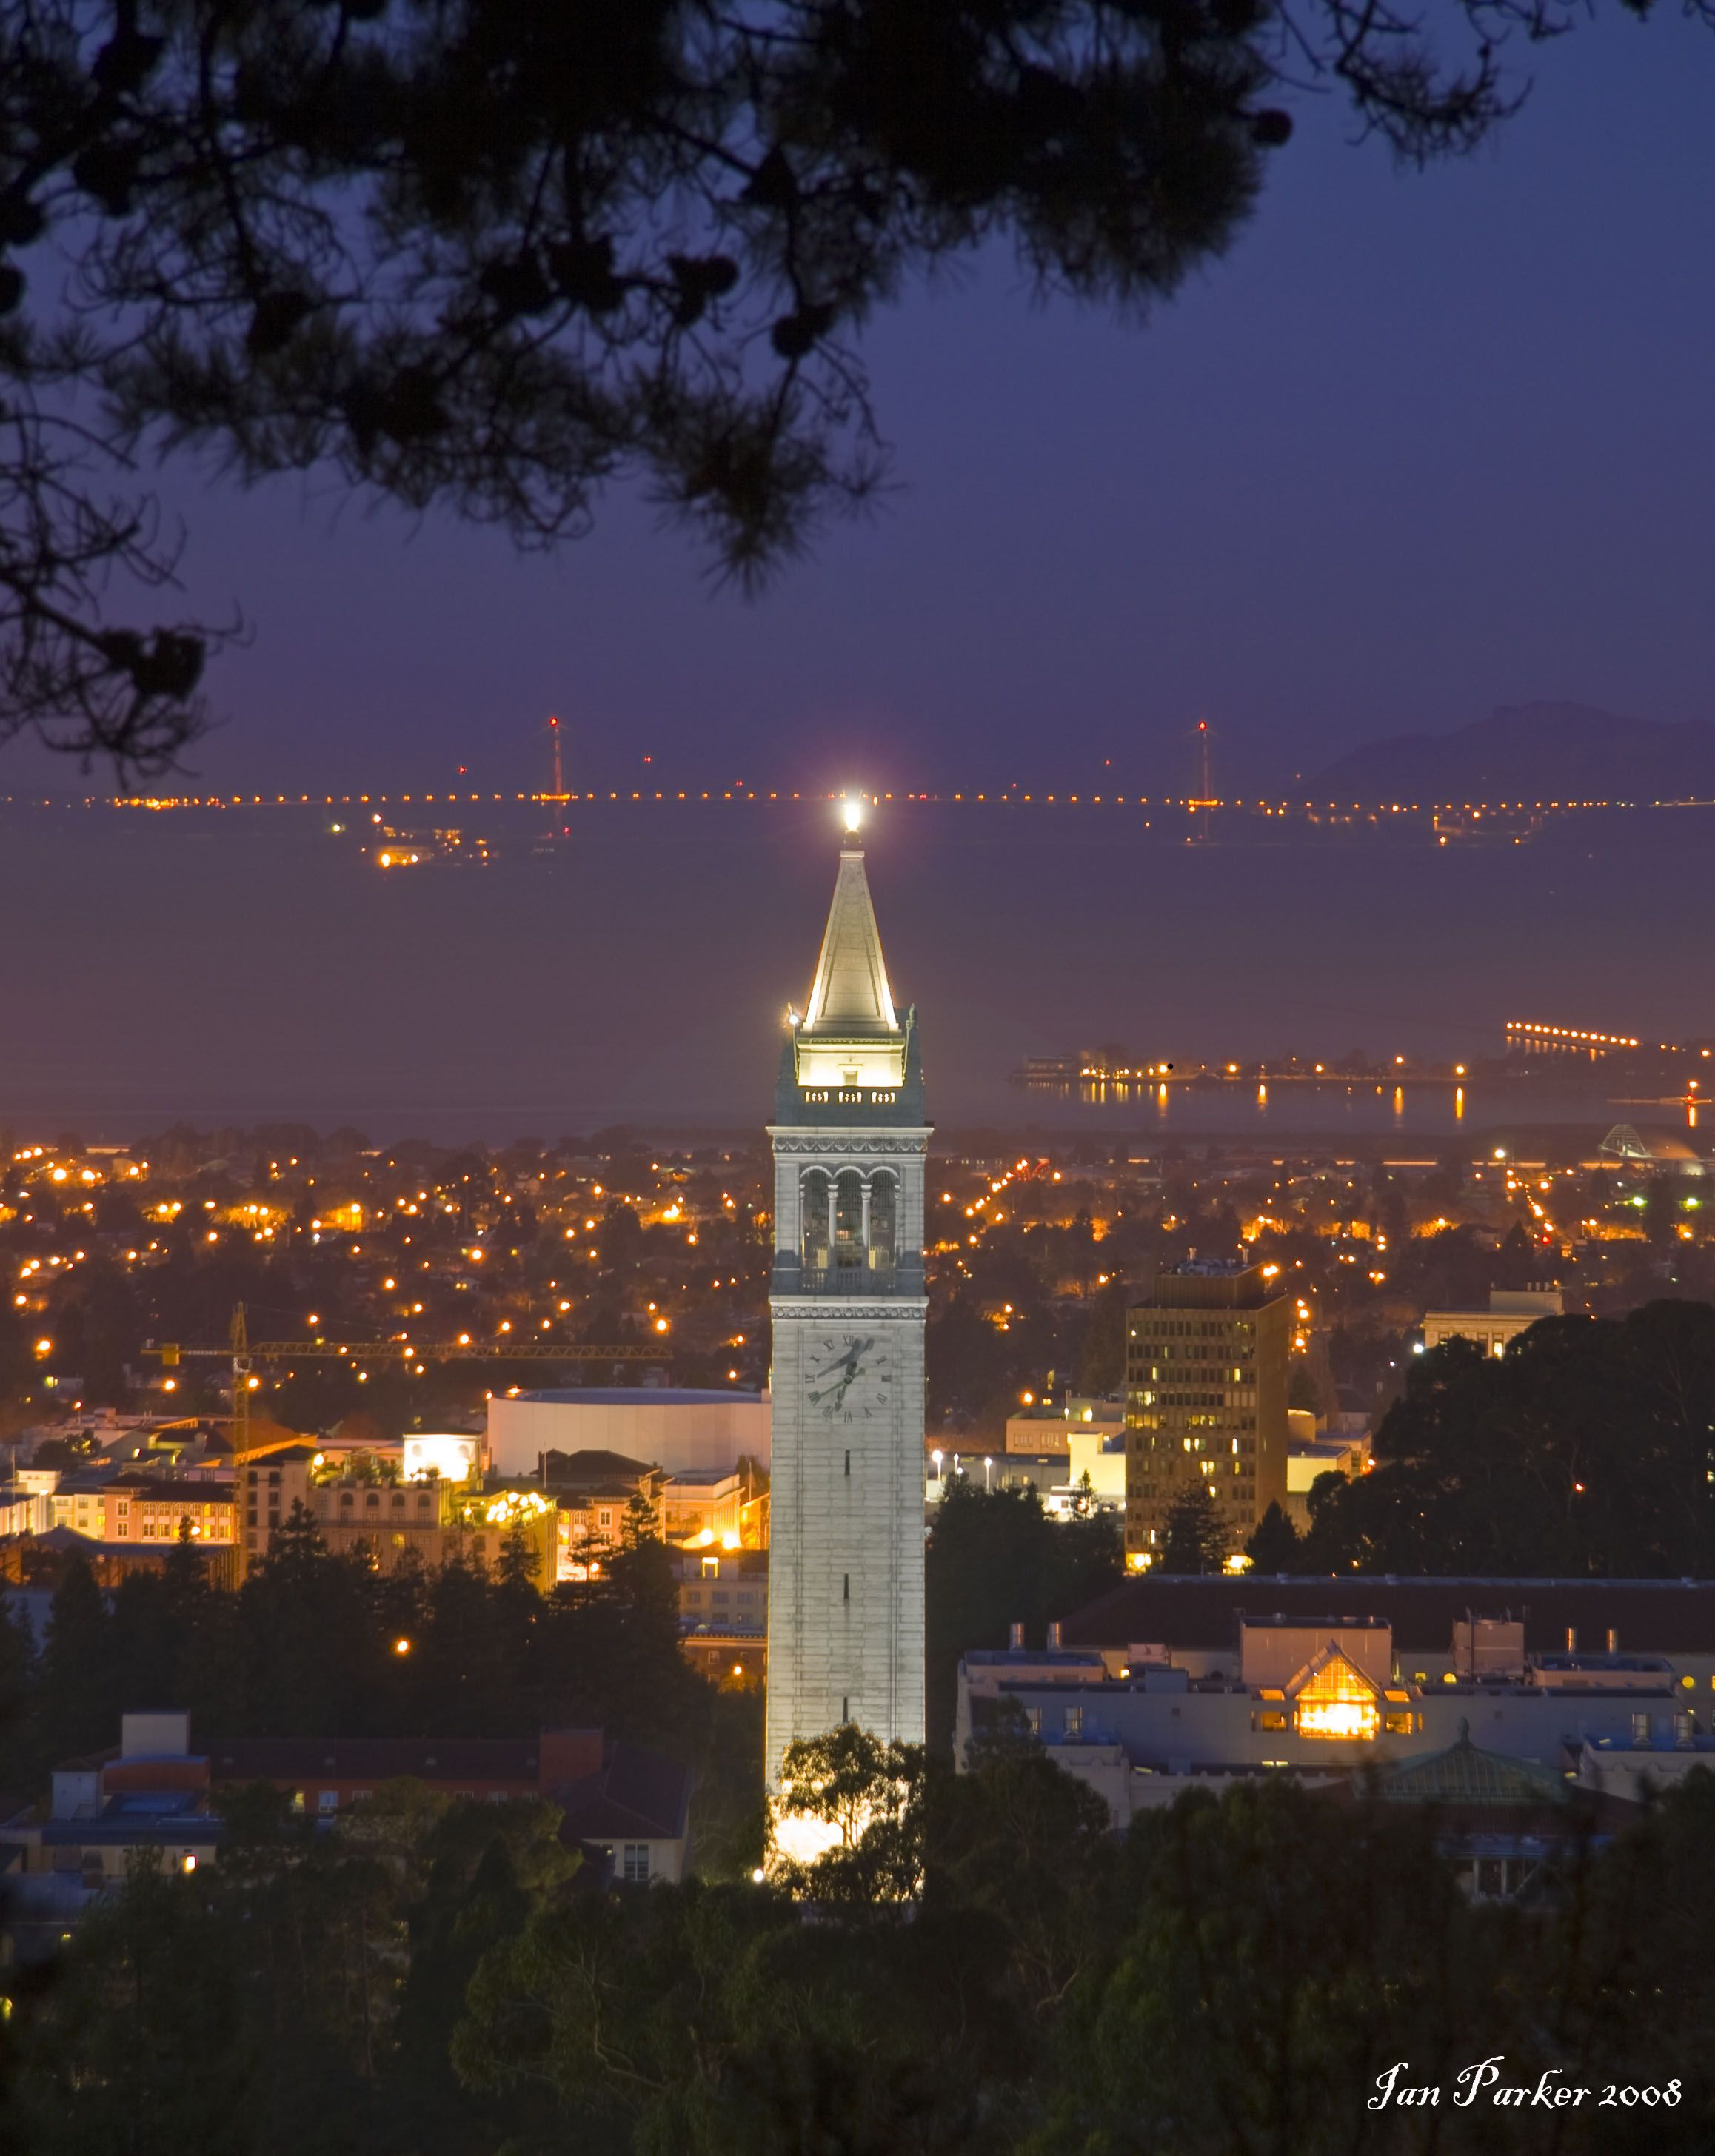 The Campanile Sather Tower at UC Berkeley I still can t believe I have the honor of learning Anthropology here